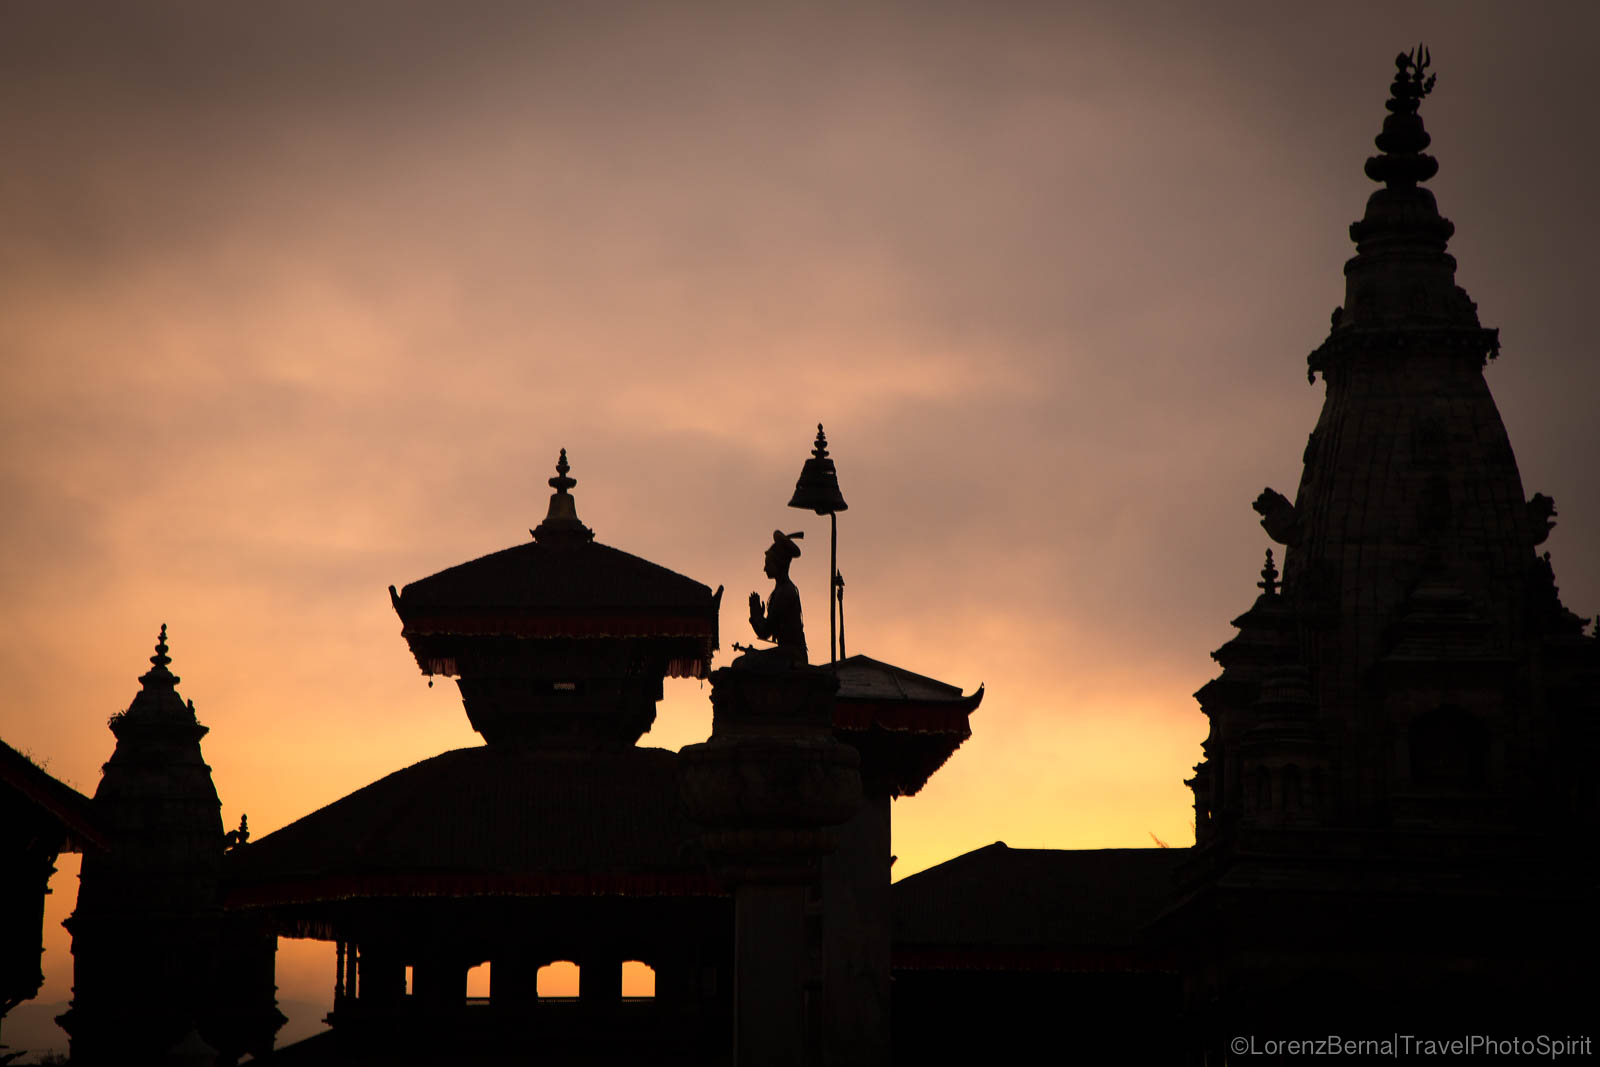 At Dawn, Silhouettes of the temple in Bhakthapur Durbarsquare, in Kathmandu Valley - Travel Photography of Nepal by Lorenz Berna.